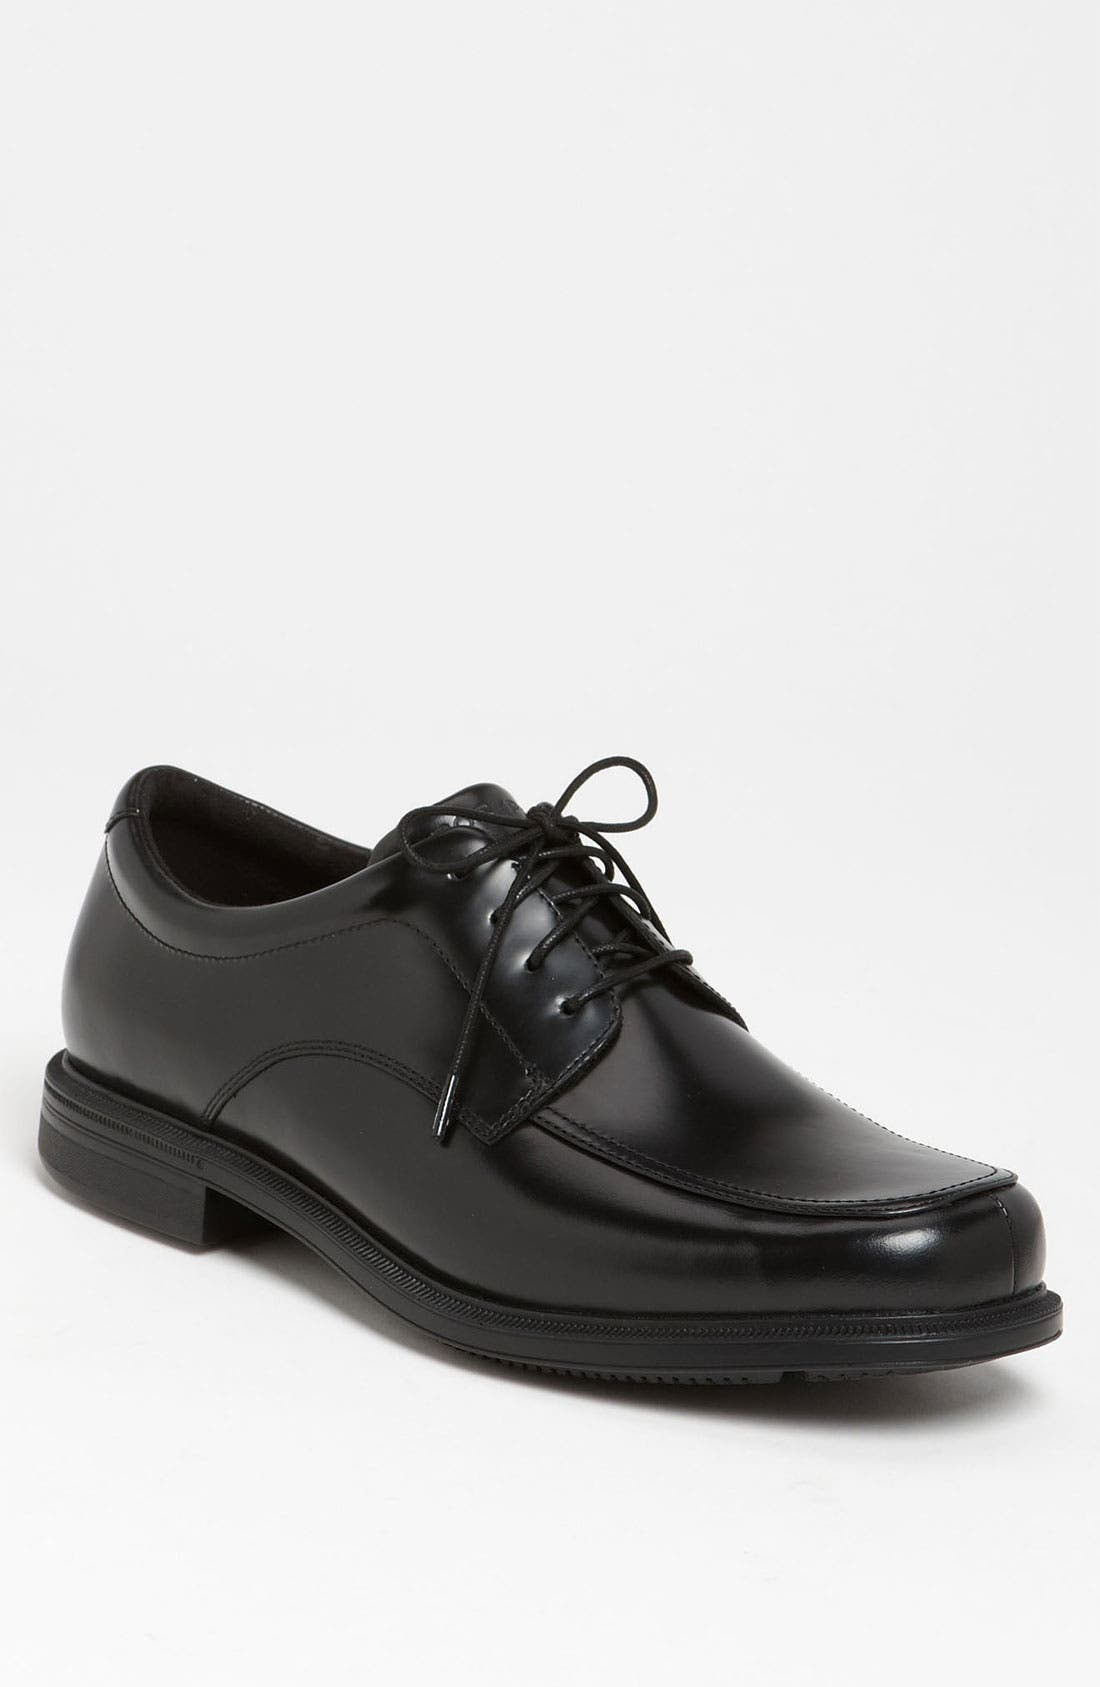 Main Image - Rockport 'Editorial Offices' Apron Toe Oxford (Online Only)